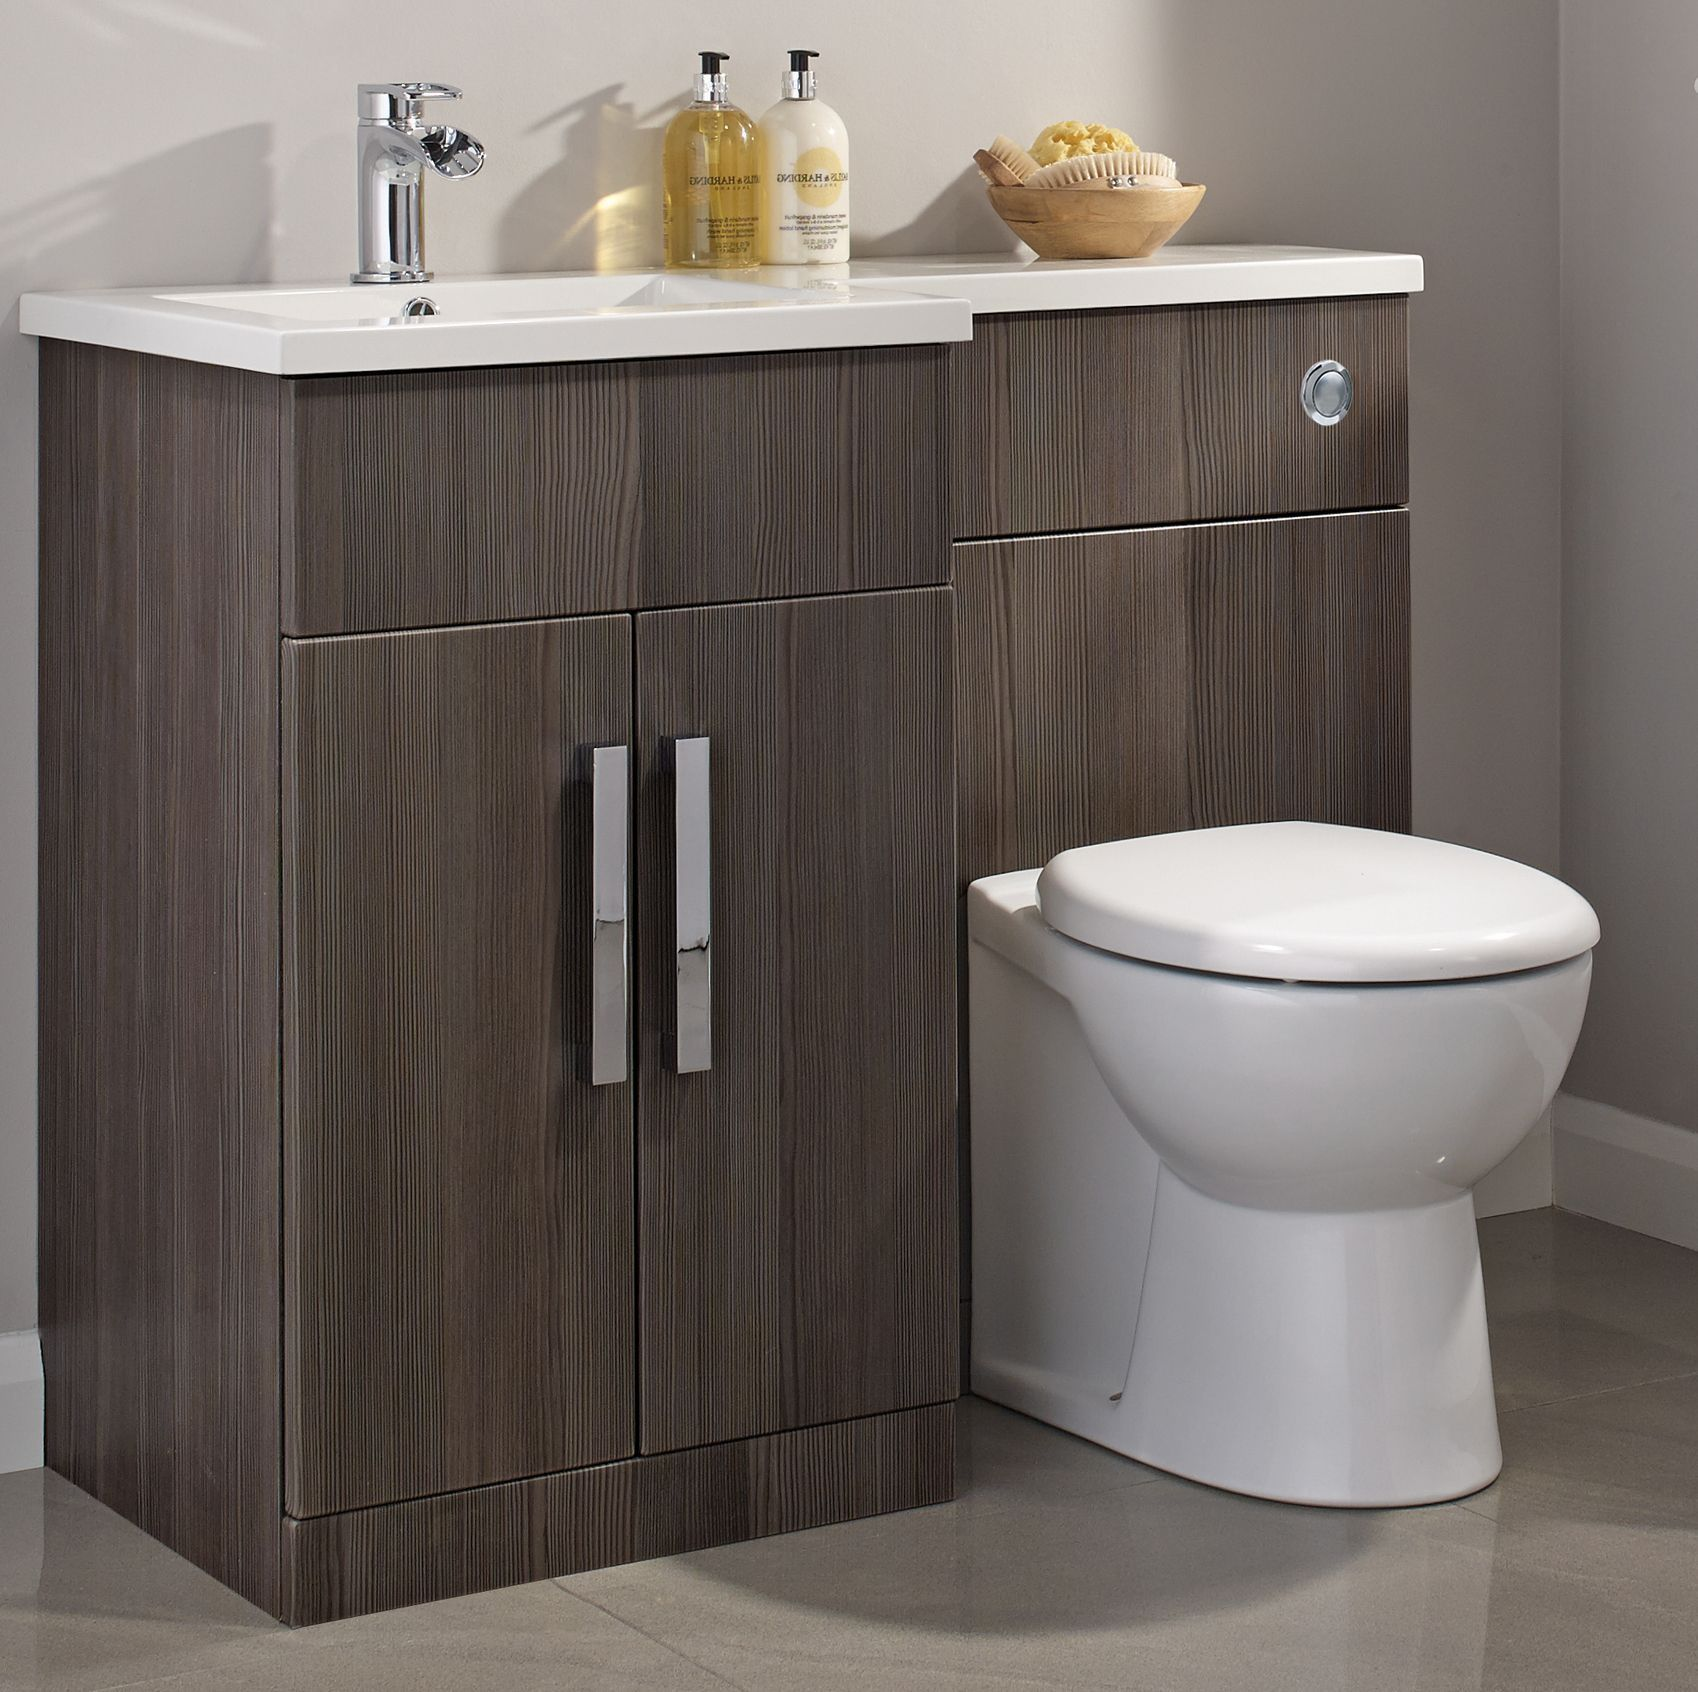 Bathroom Cabinets Uk Bq Cooke Lewis Waneta White Vanity Unit Basin Set Departments